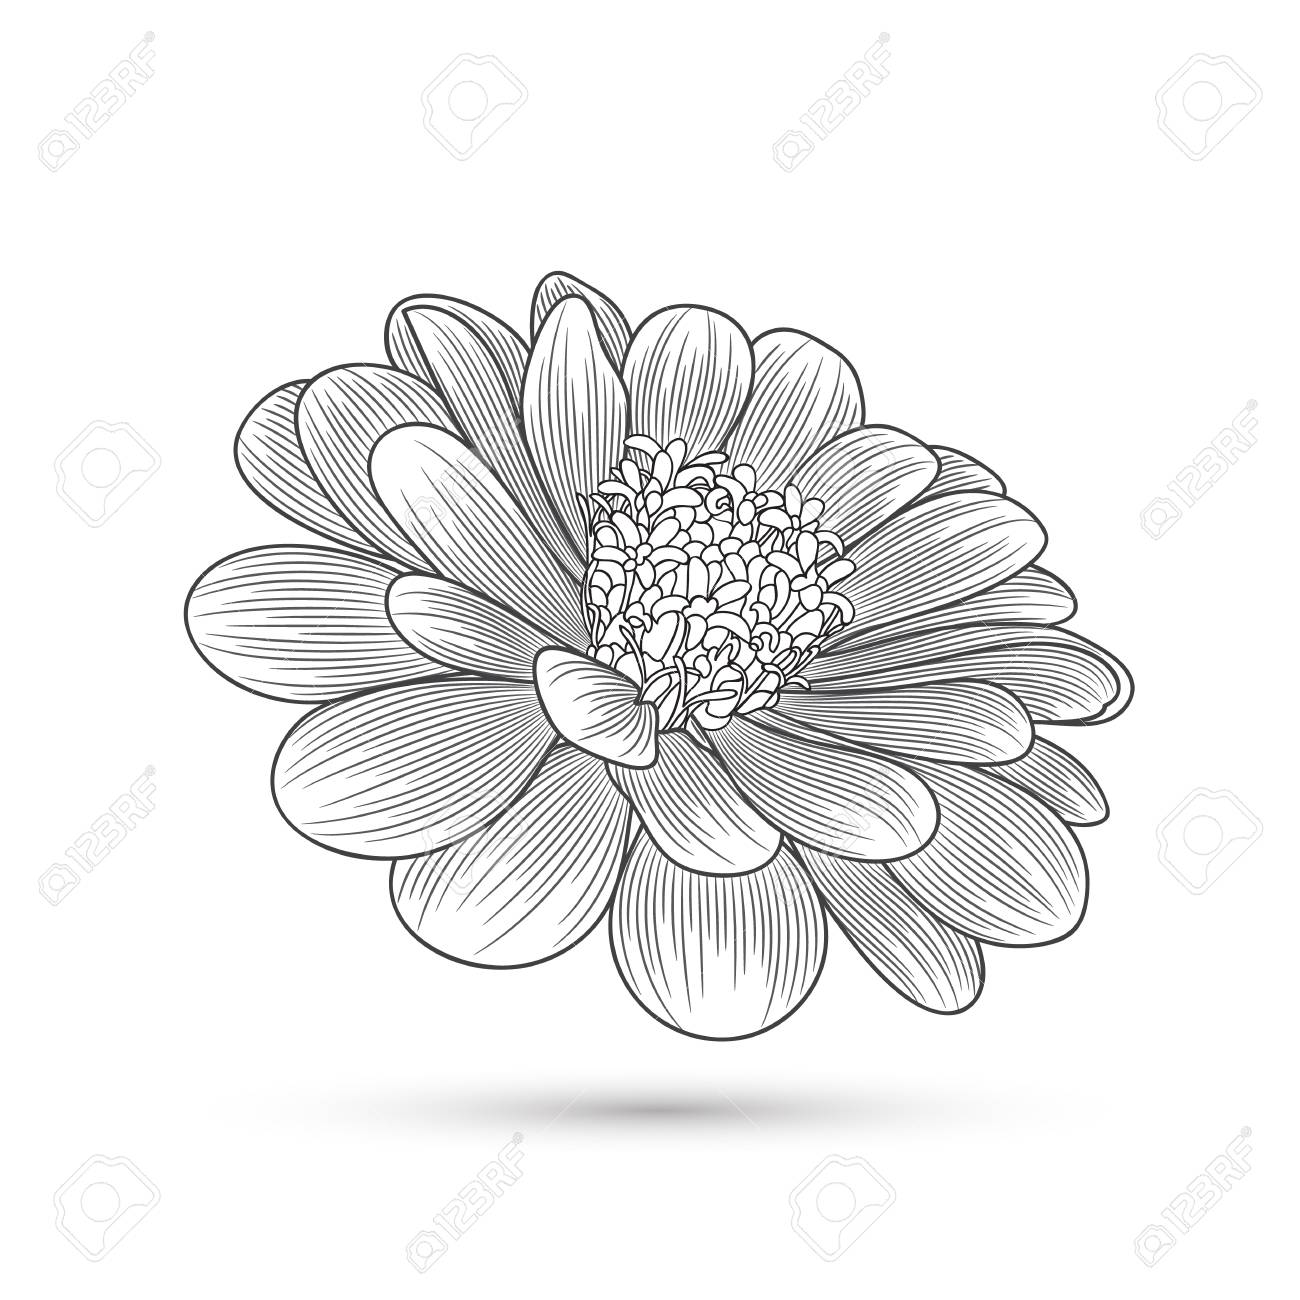 Abstract Hand Drawn Flower Zinnia Element For Design Royalty Free Cliparts Vectors And Stock Illustration Image 99262103